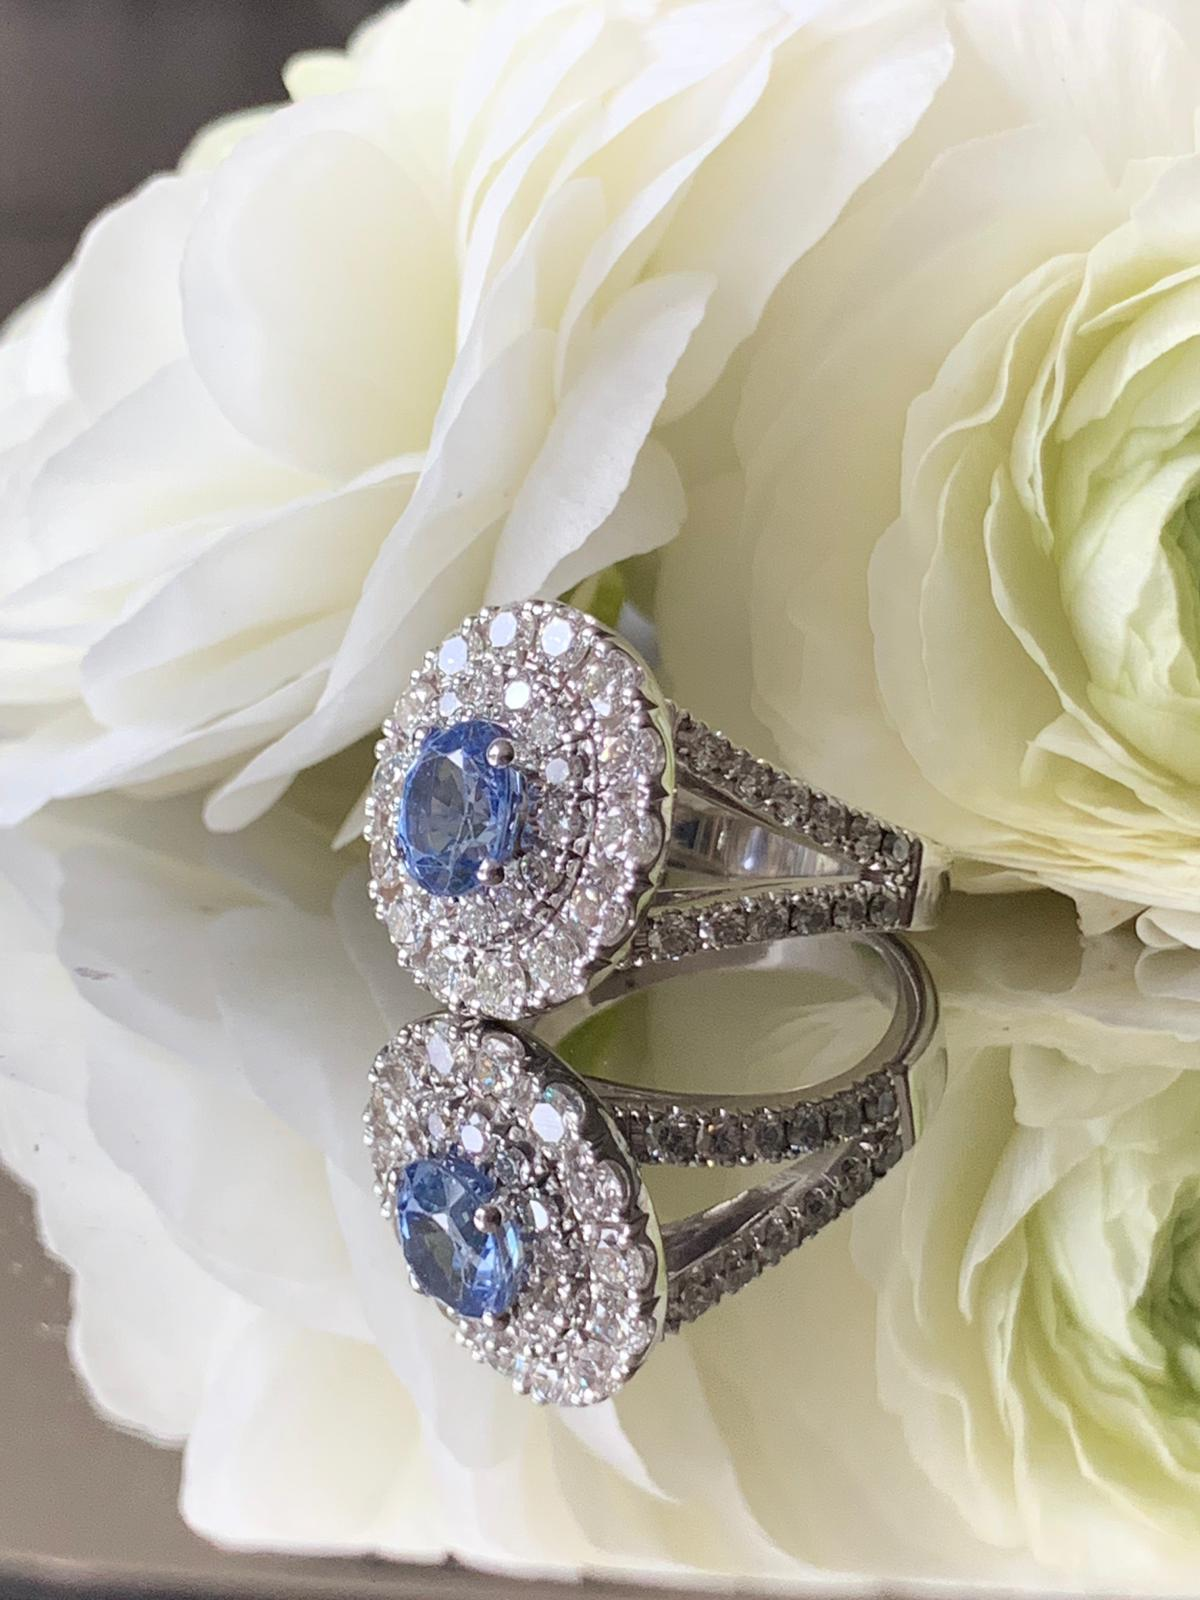 Oval blue sapphire set with diamonds in white gold